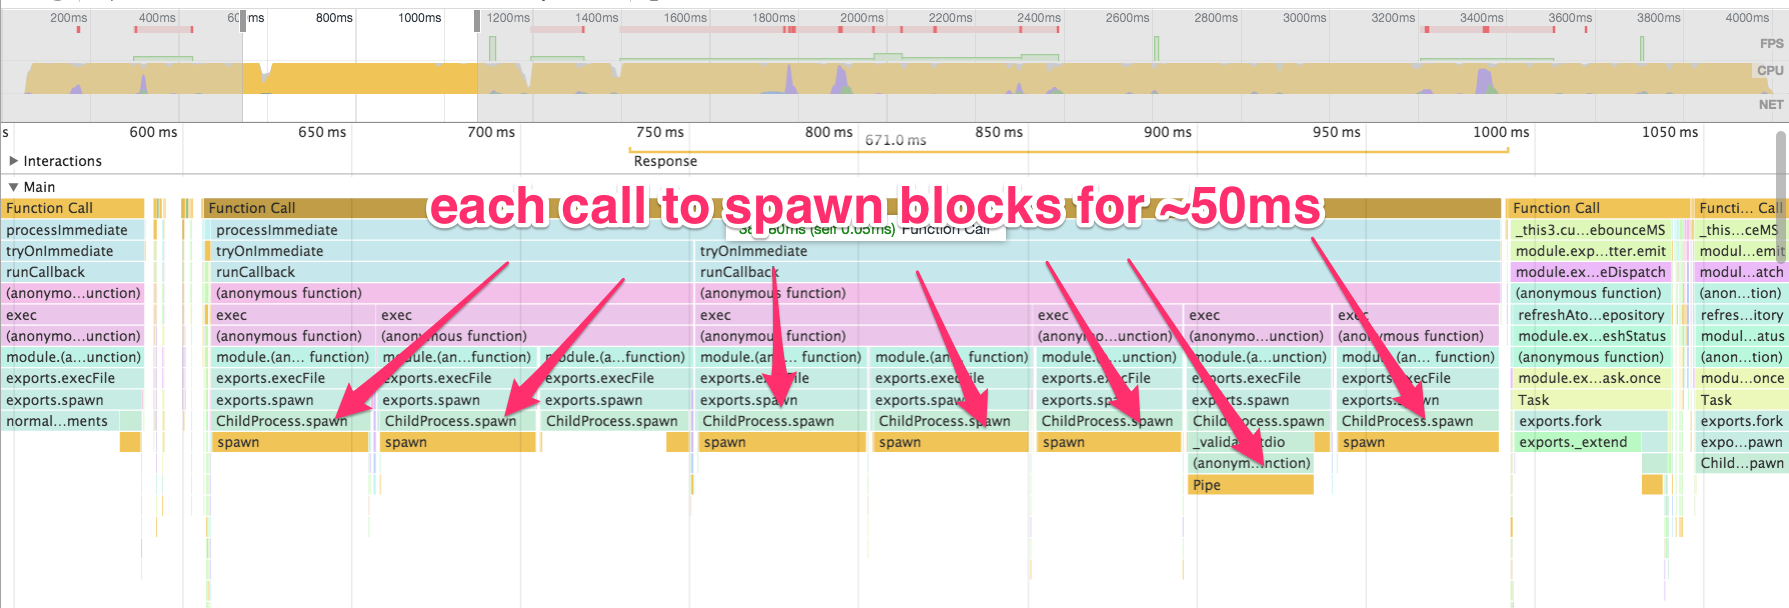 Node.js spawn call taking 50ms synchronous time each usage